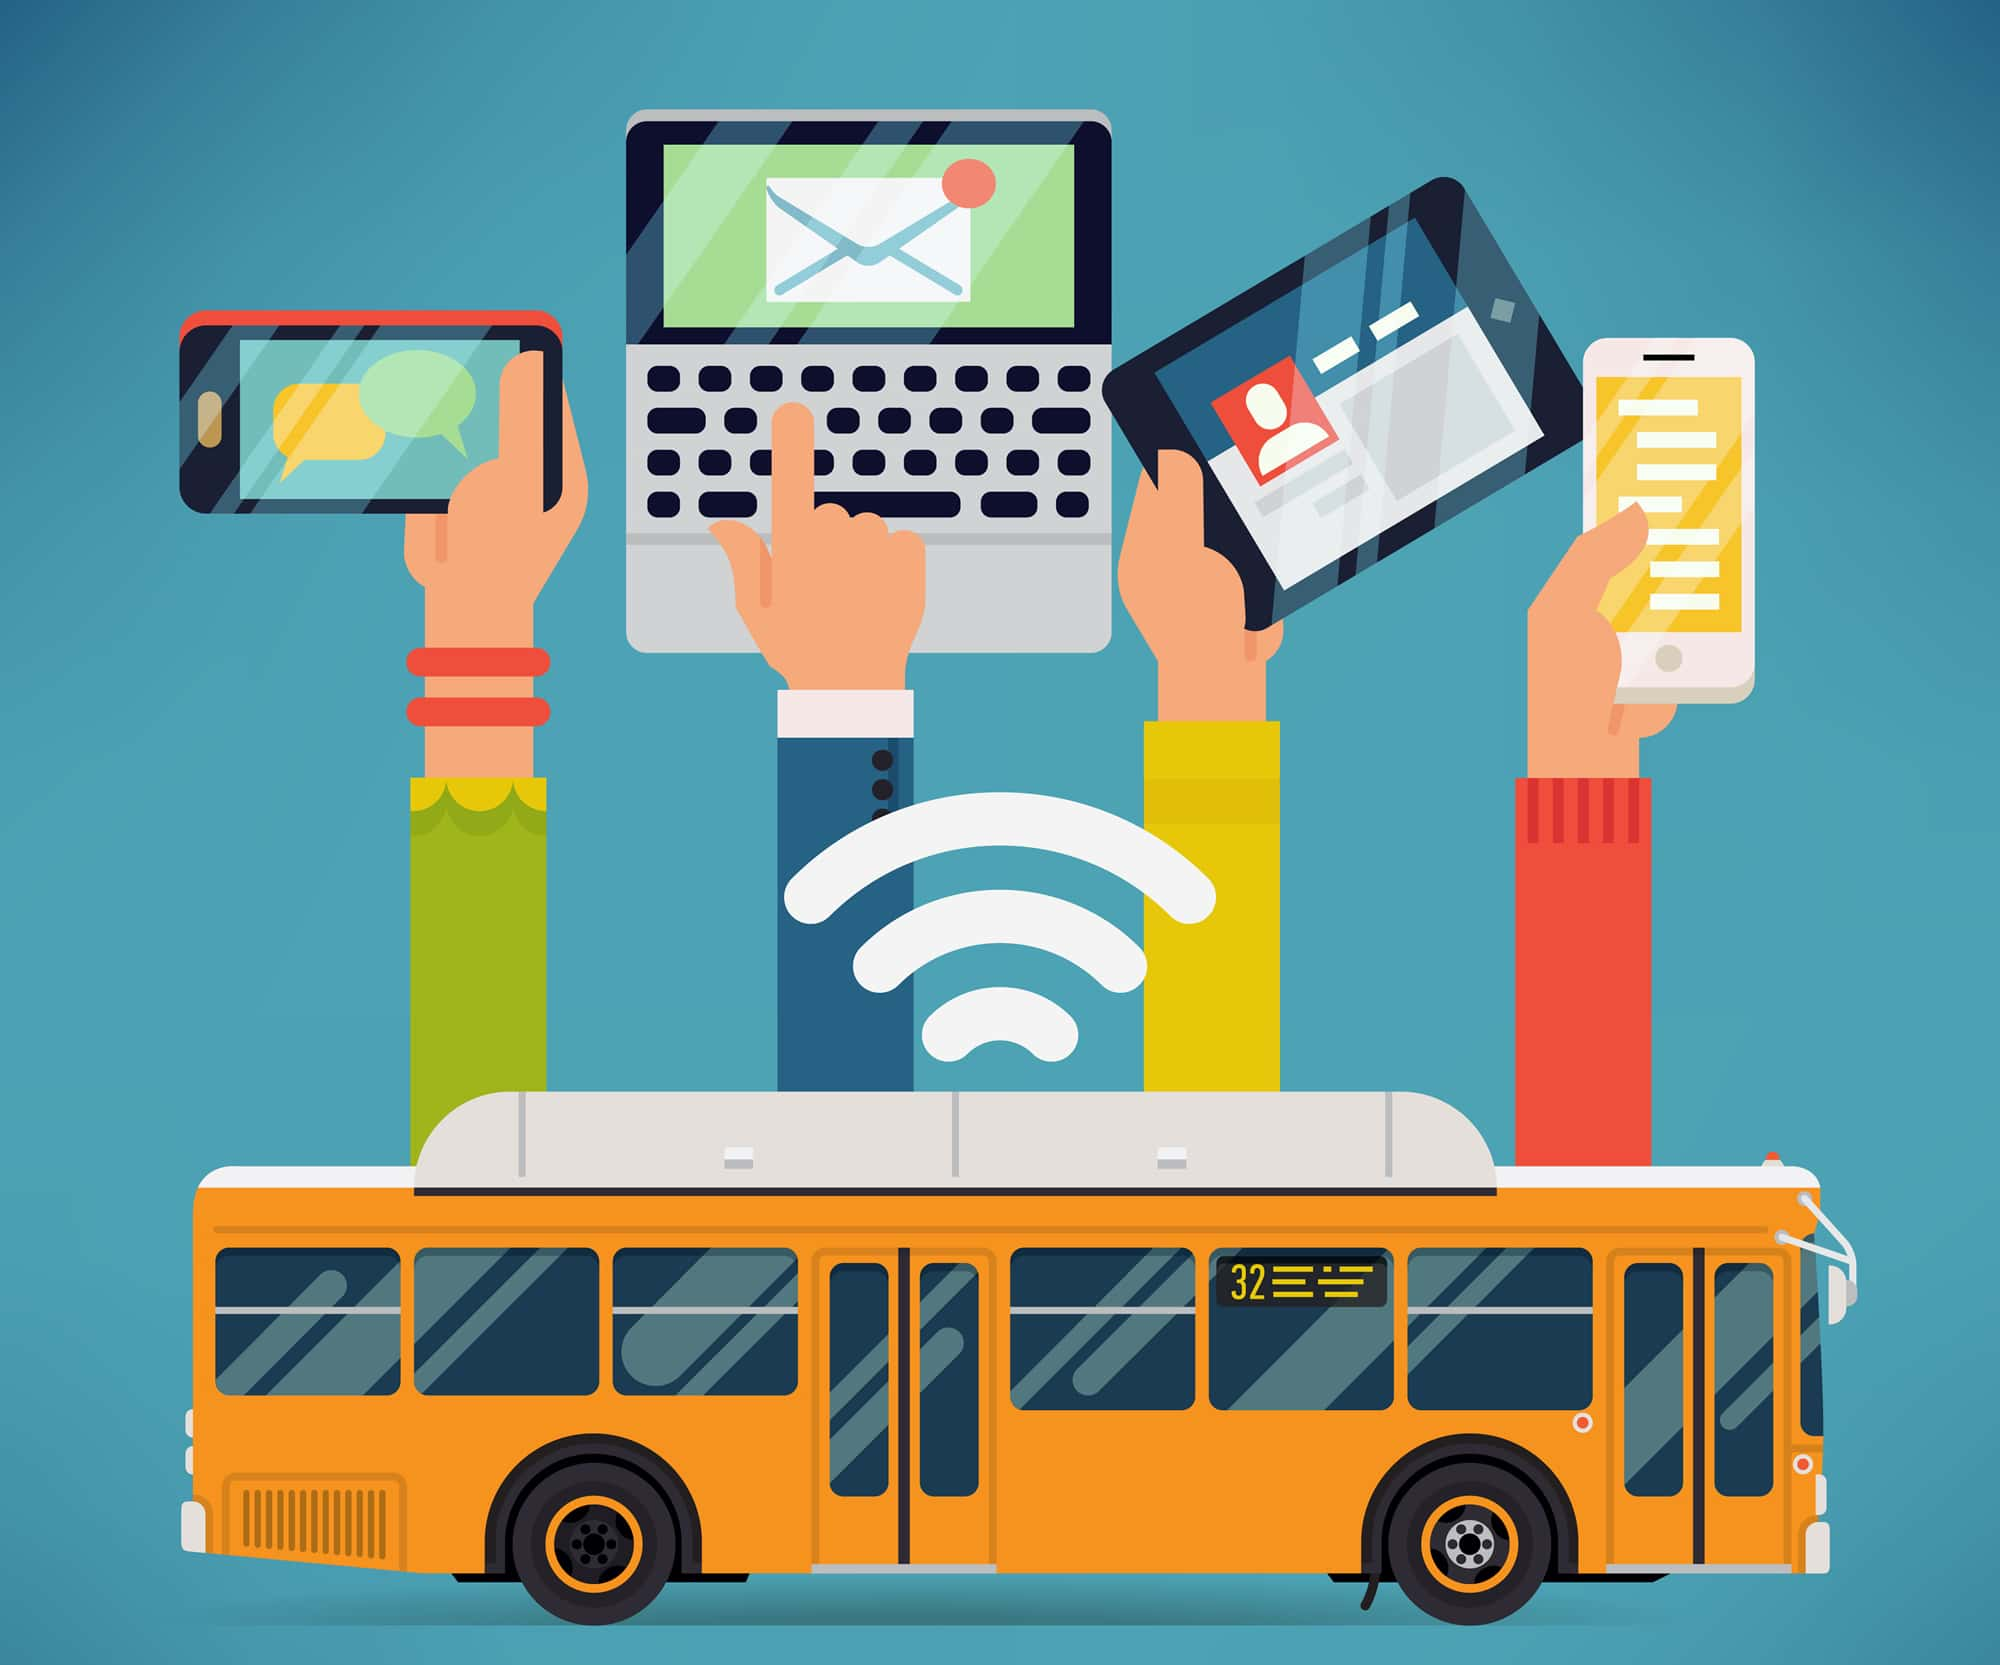 Wifi advantages in bus